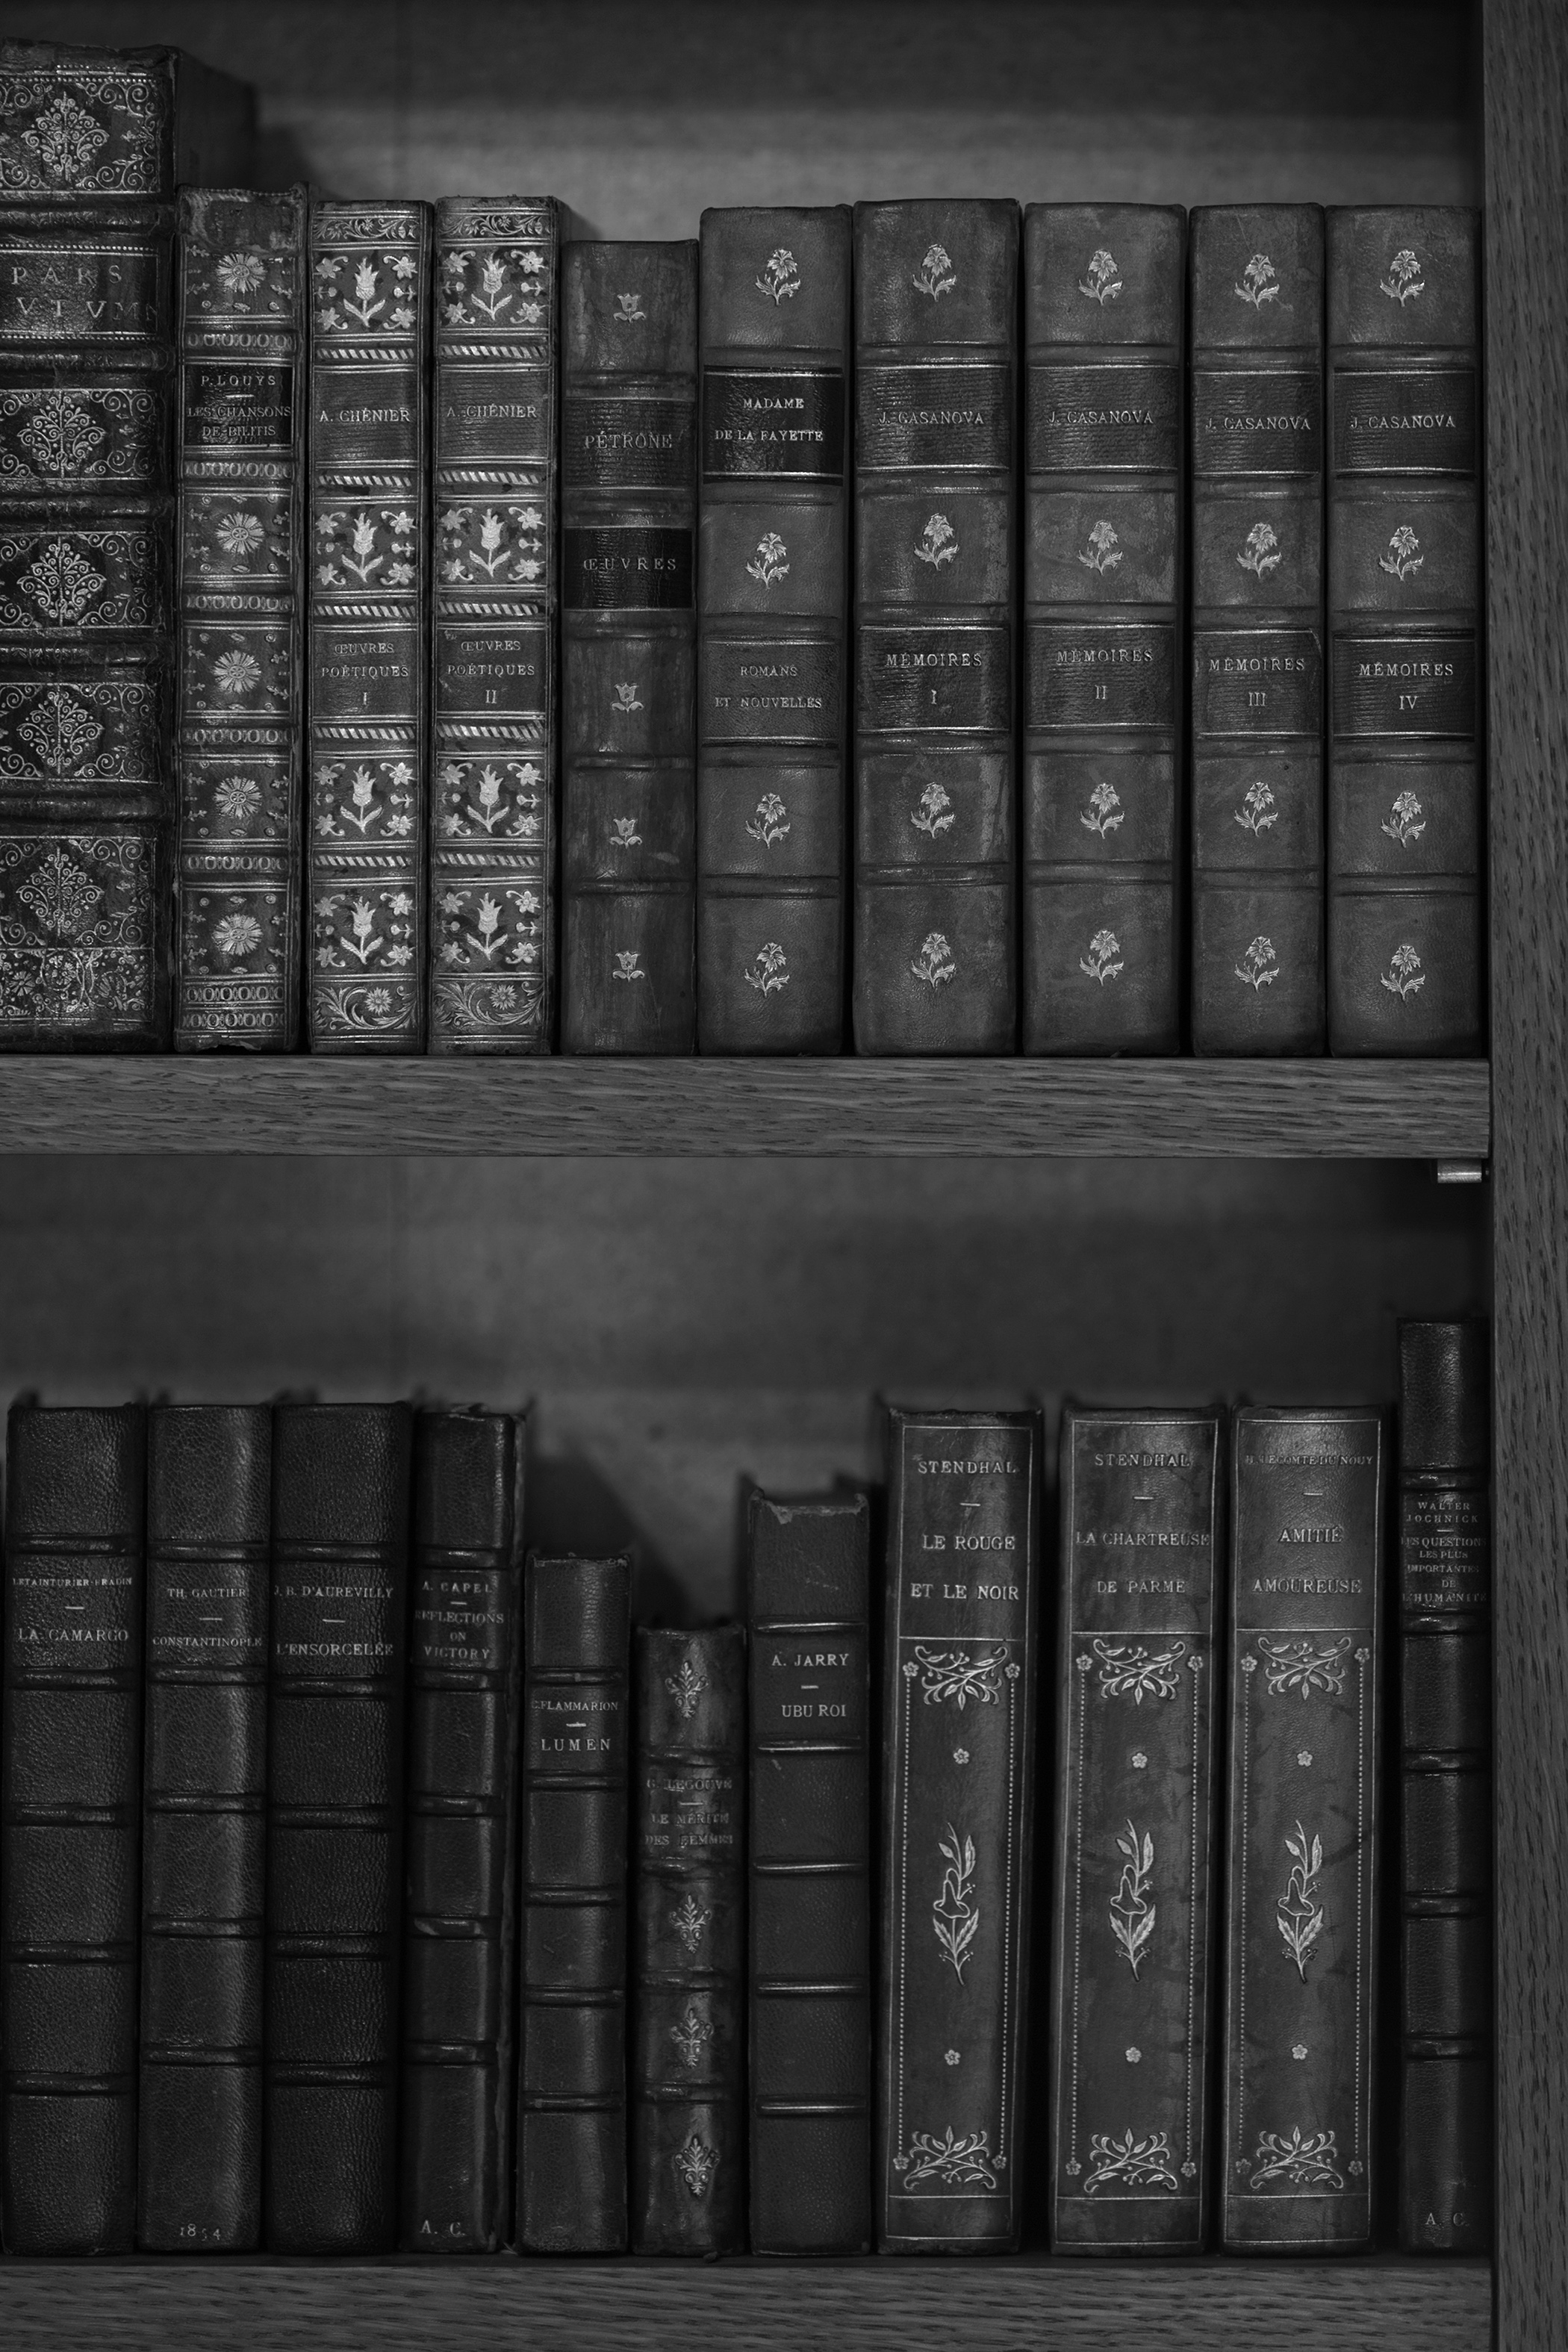 cc_venice_thierry-depagne-_library-of-gabrielle-chanel